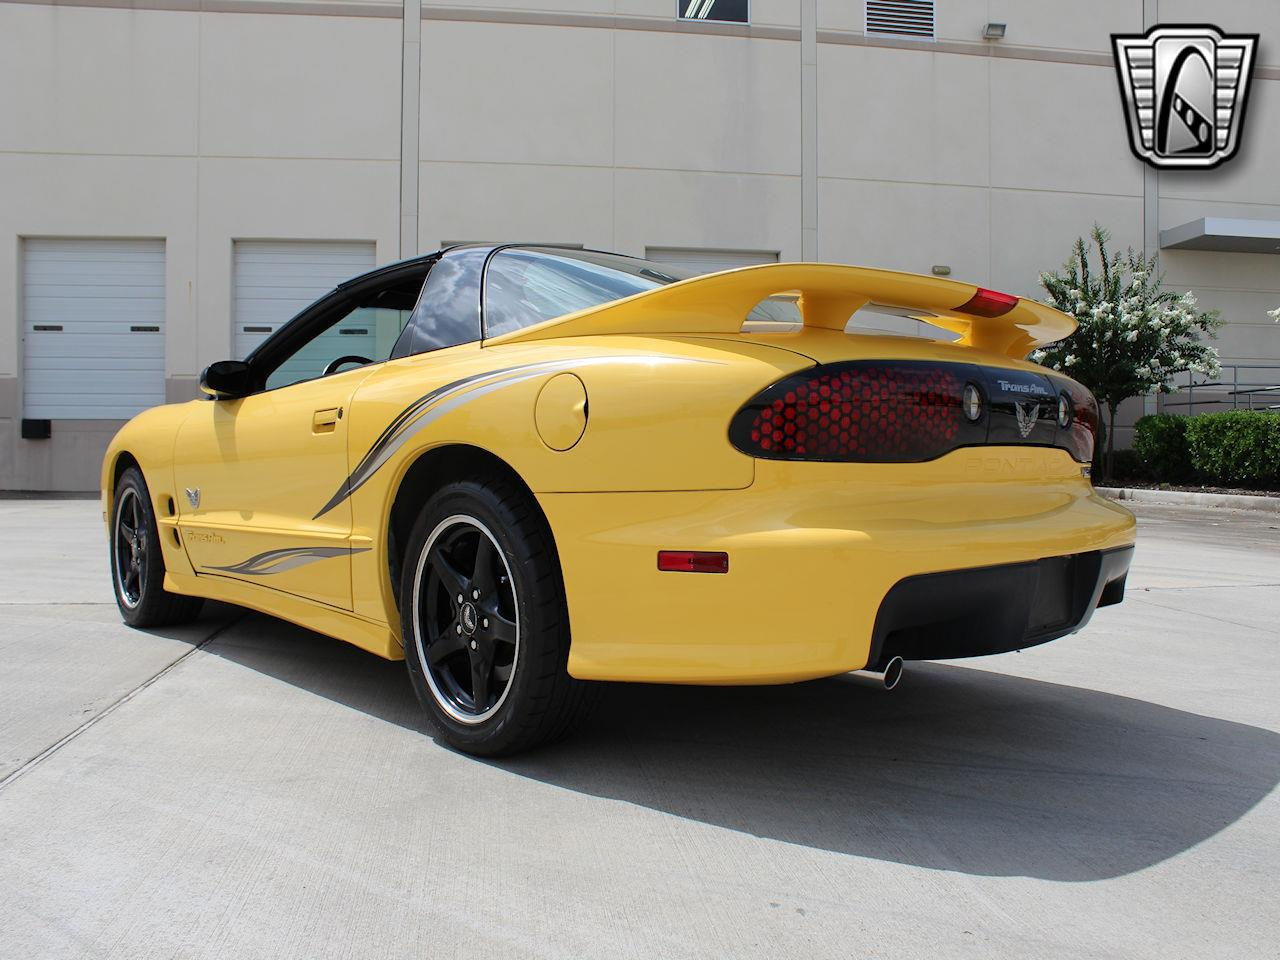 2002 Pontiac Firebird Trans Am (CC-1363668) for sale in O'Fallon, Illinois